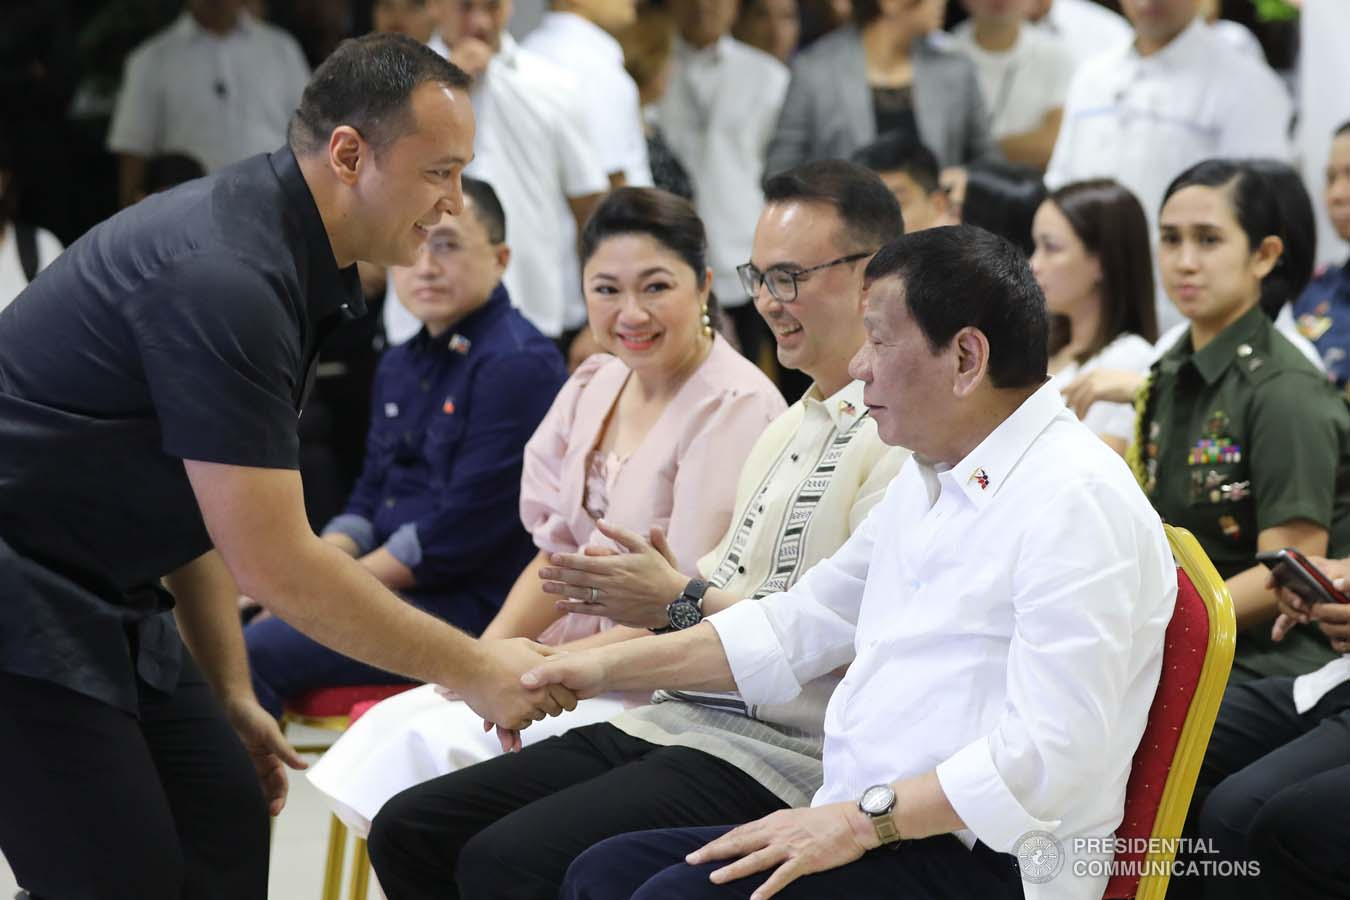 President Rodrigo Roa Duterte is greeted by Taguig City Mayor Lino Cayetano during the President's visit to the Taguig City Center for the Elderly on November 21, 2019. ALFRED FRIAS/PRESIDENTIAL PHOTO